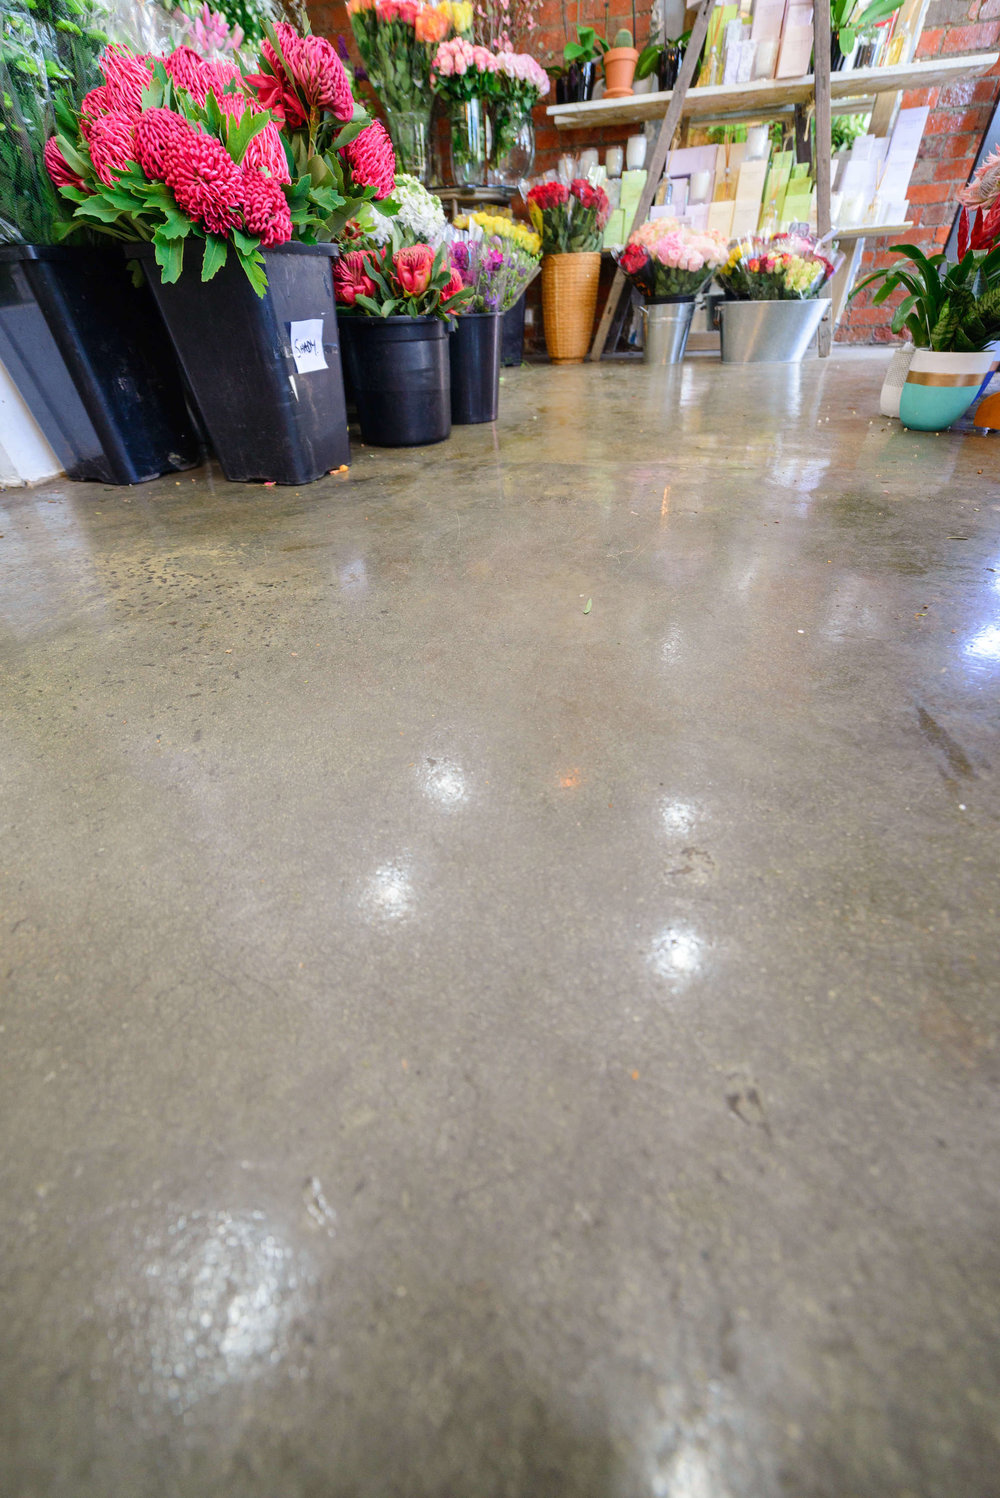 What is polished Concrete? - Polished concrete is a unique decorative finish which leaves the concrete exposed - resulting in a surface which is beautiful, reflective, durable and sustainable.This finish requires a combination of chemical, floor grinding and resin diamond techniques, and is a highly skilled and complex process.Our team are experts in selecting and executing the right process for your needs, resulting in a perfect finish every time.